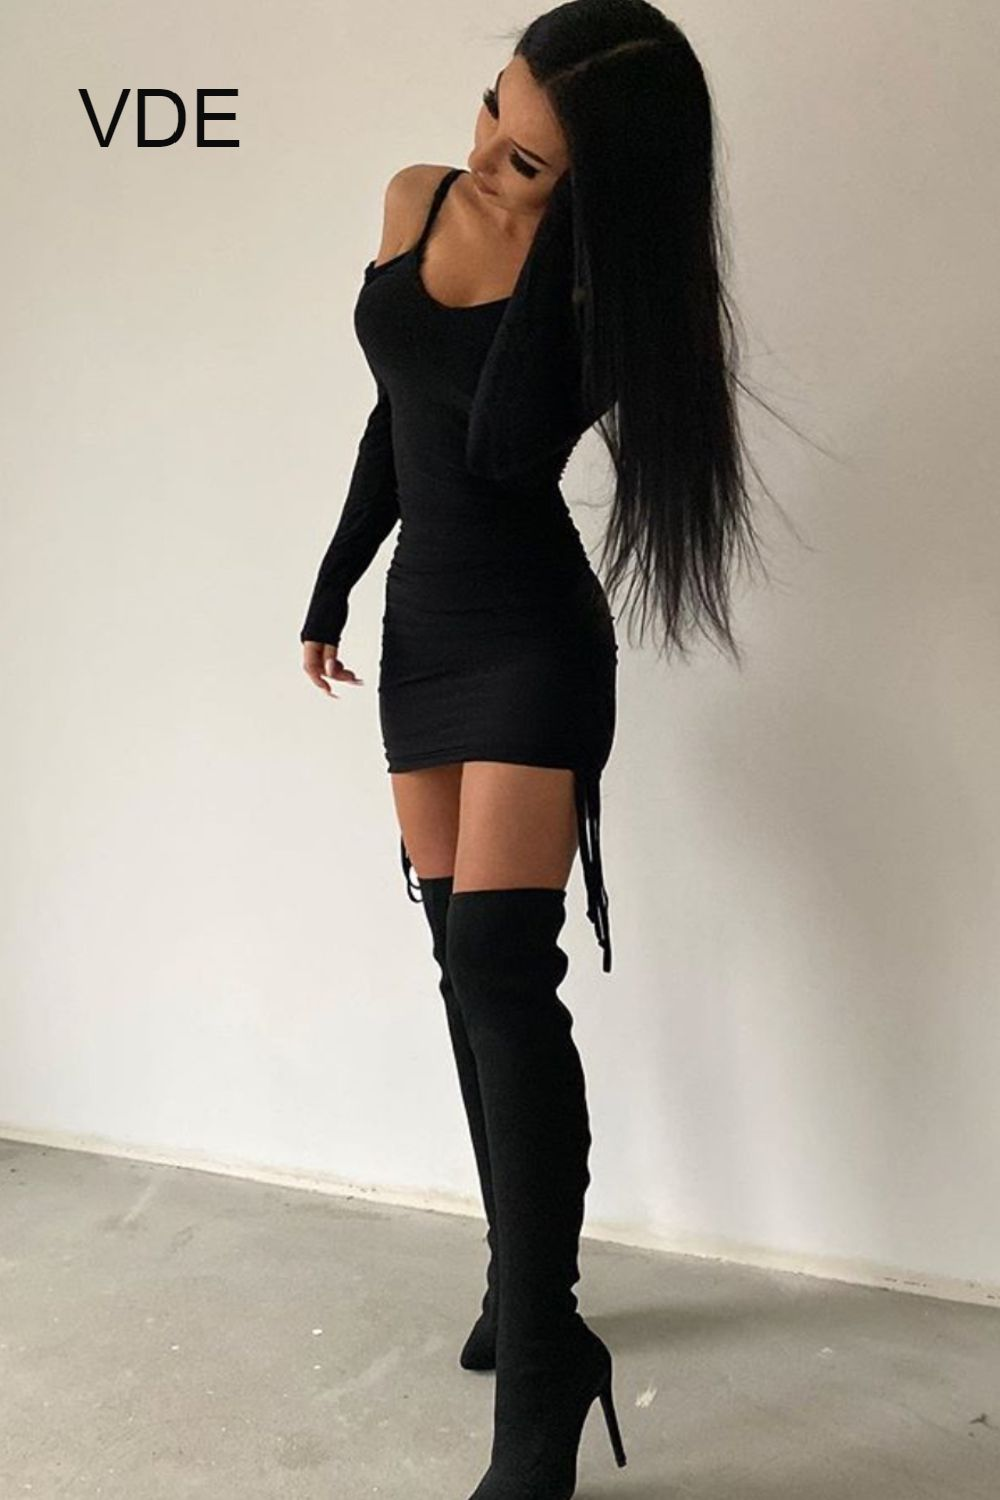 How To Wear Over The Knee Boots With Black Mini Dress Mini Black Dress High Knee Boots Outfit Fashion [ 1500 x 1000 Pixel ]